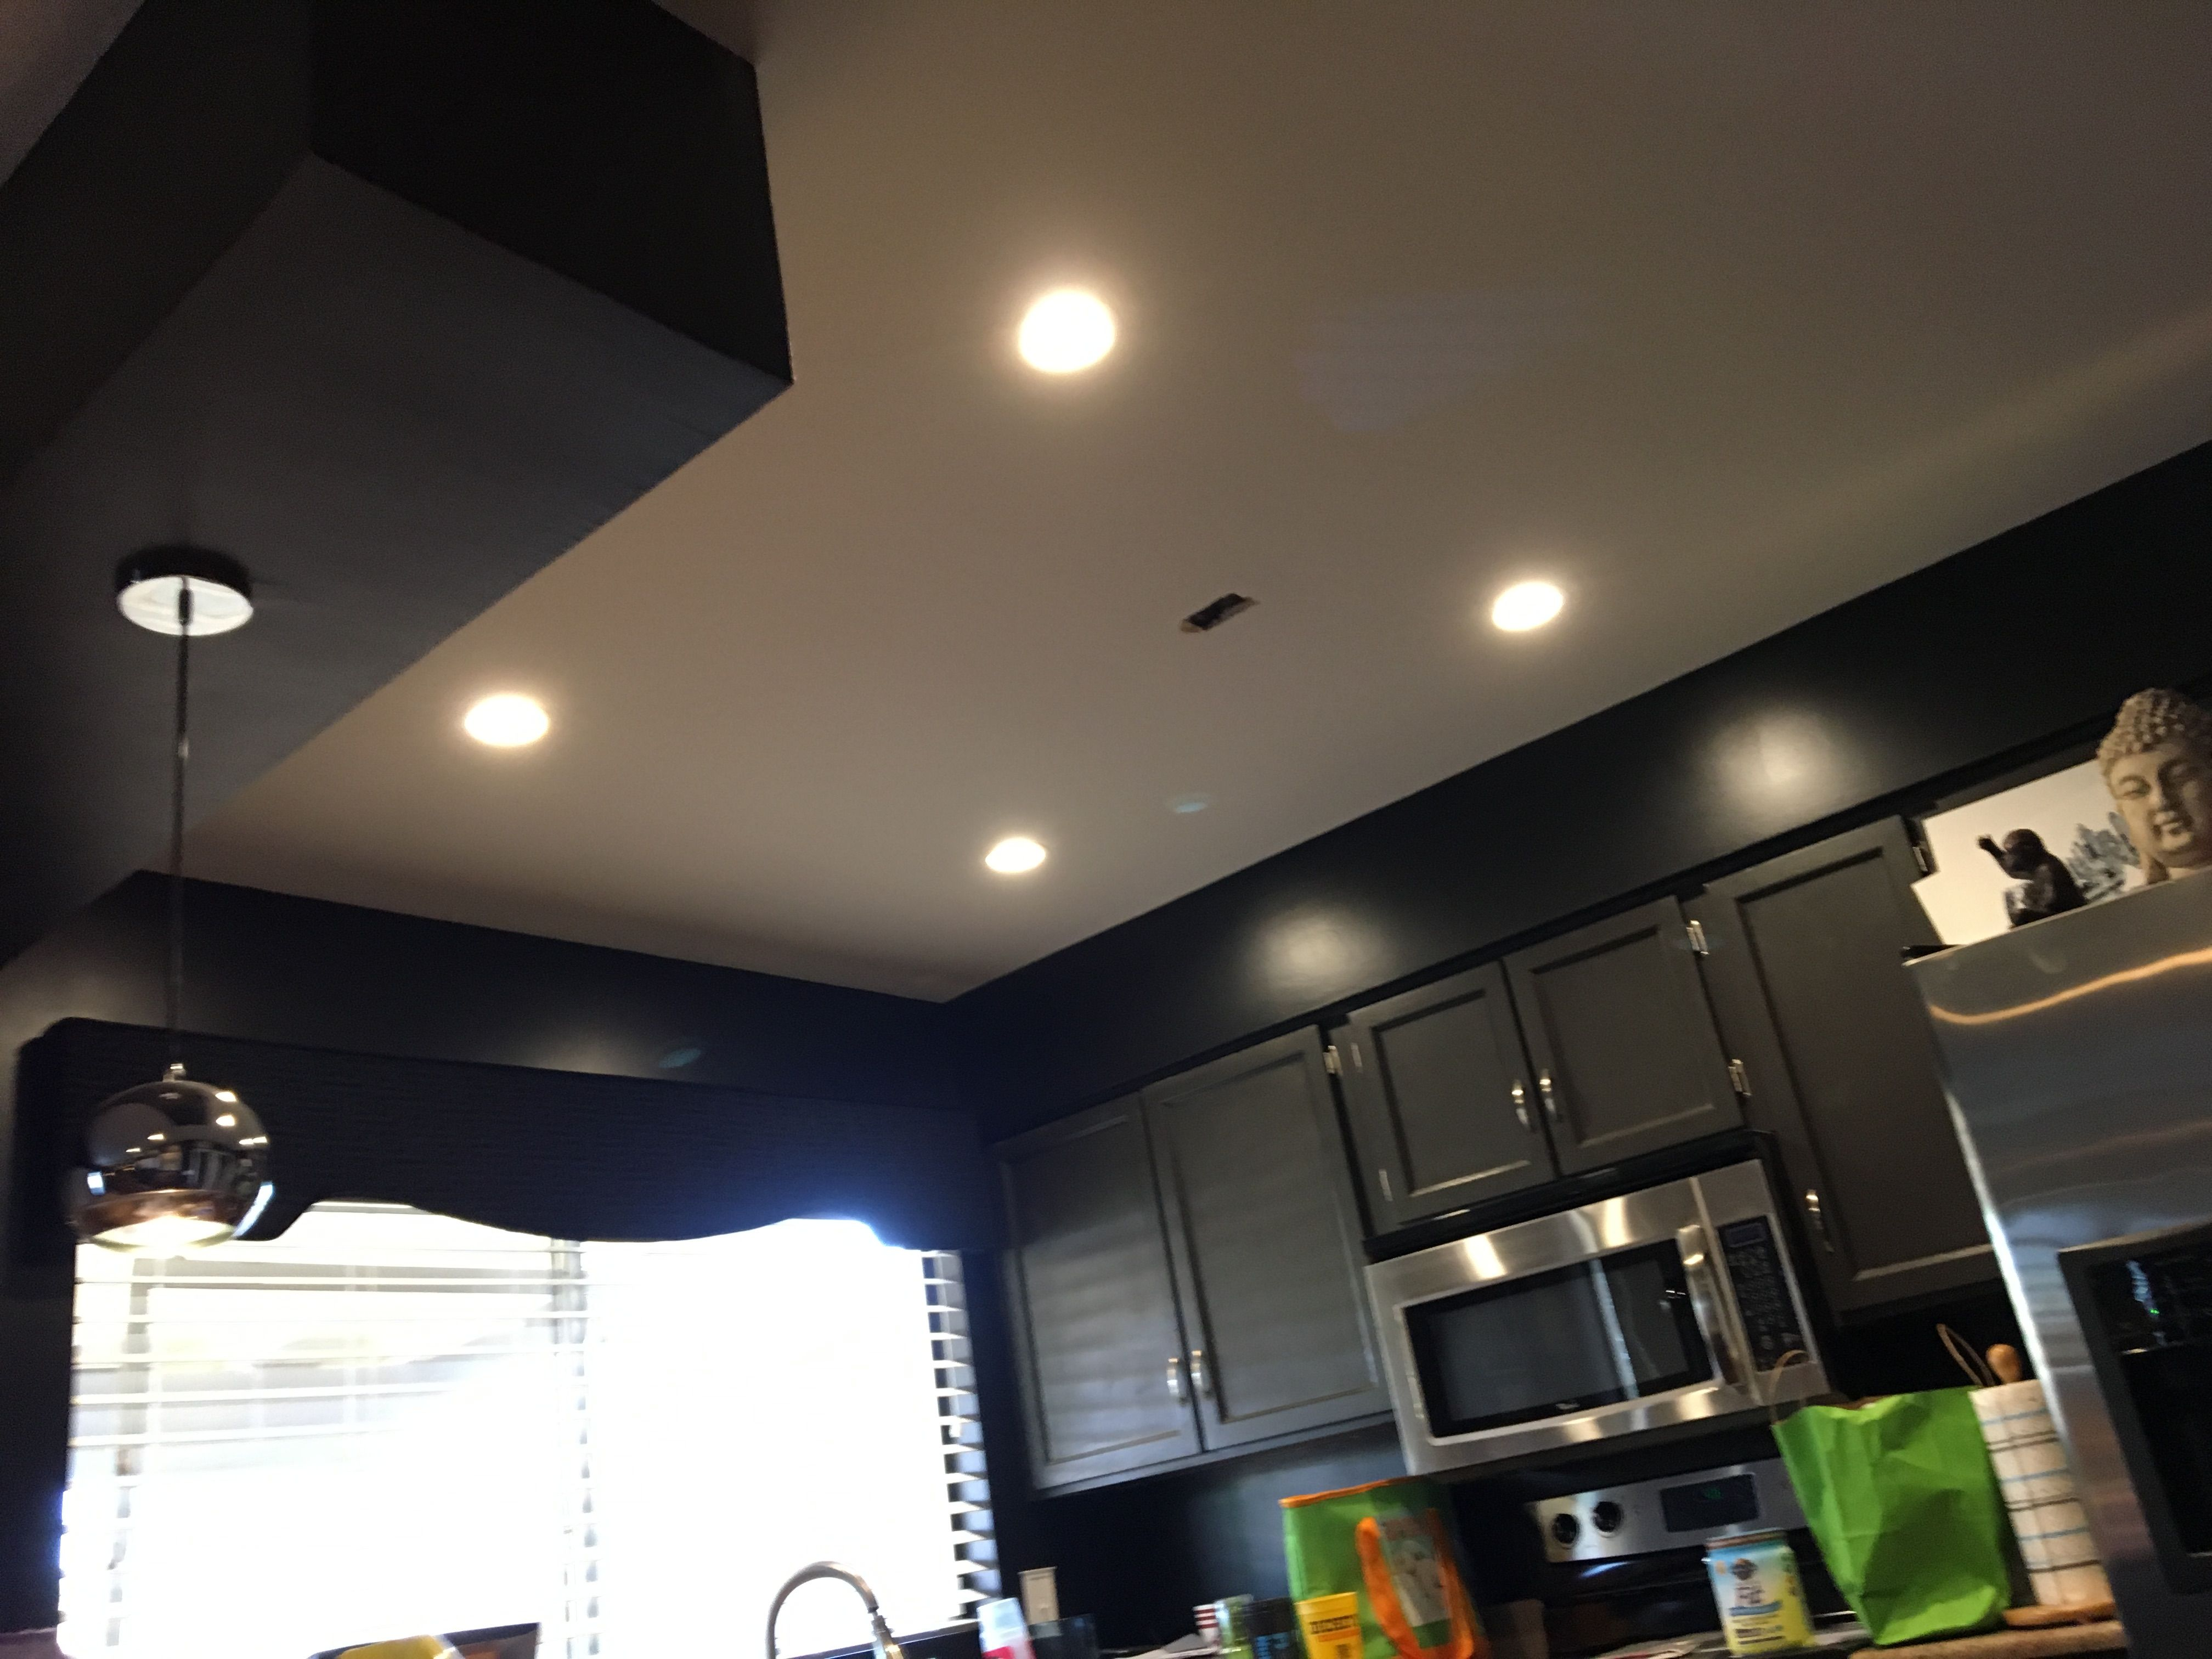 Installed 4x 4 Inch 3000k Led S In A Customers Kitchen Led Can Lights Led Recessed Lighting 4 Inch Recessed Lighting